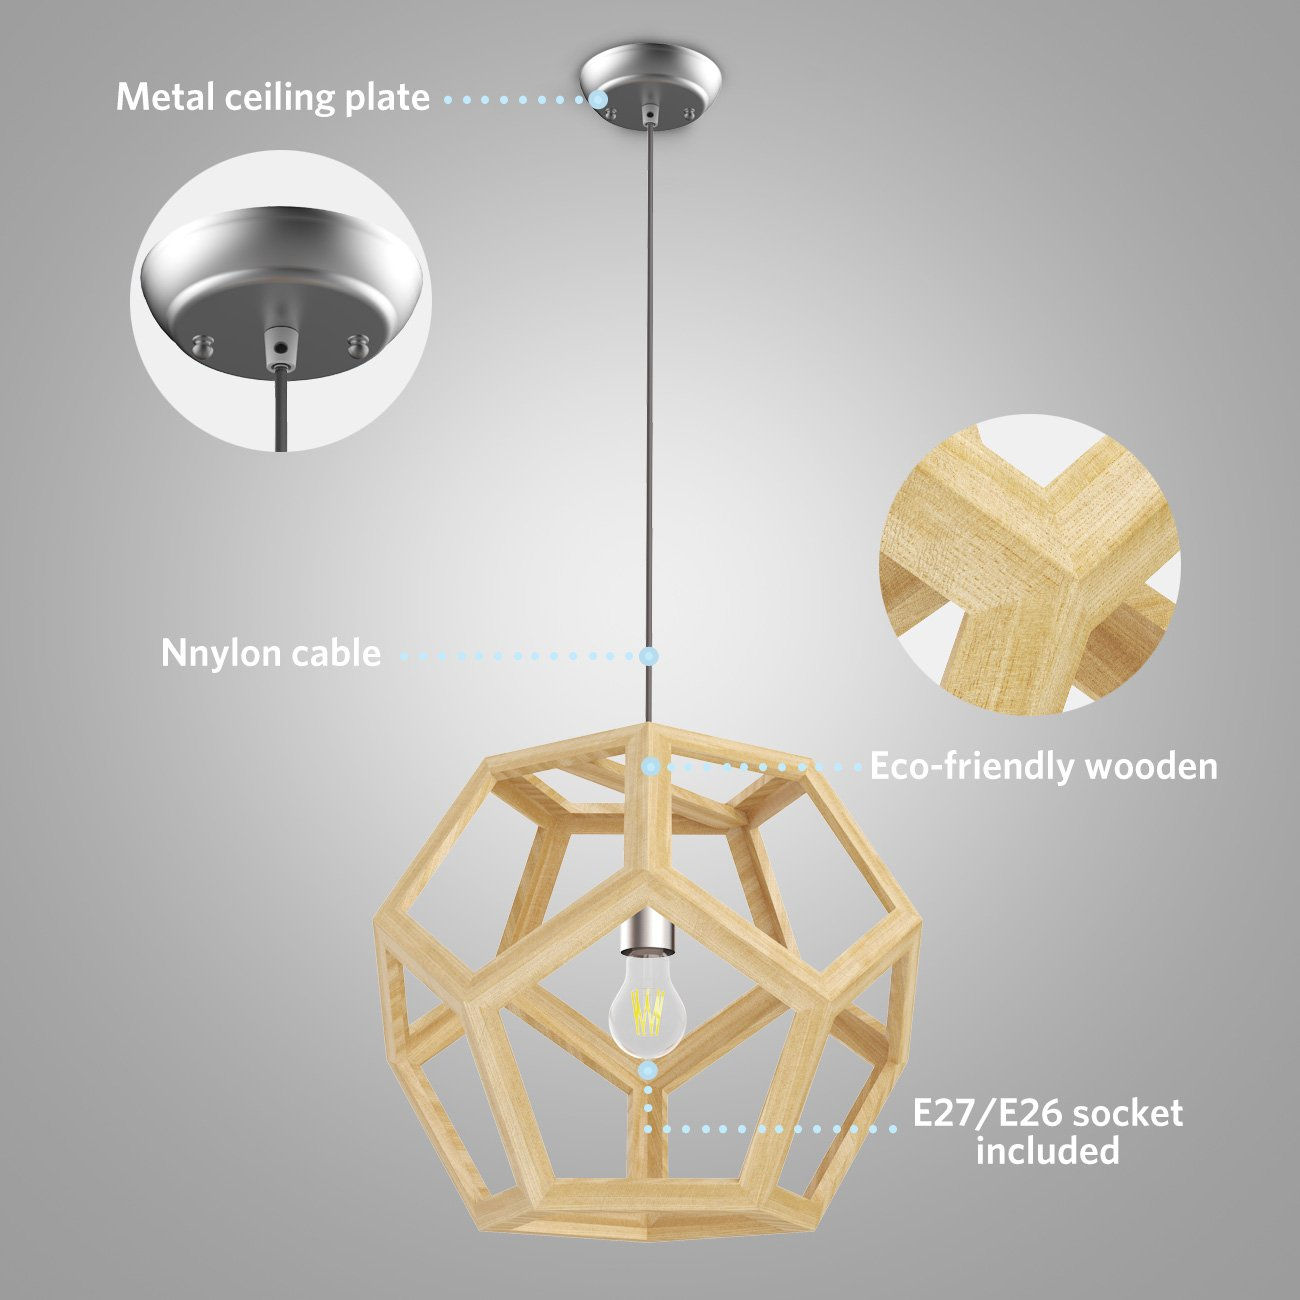 Tomons Hollow Design Wood Ceiling Pendant Lamp, Geometry Shape, E26/E27 Bulb Base, 60 Watts Incandescent Bulb, 12 Watts LED Bulb For Dining Room, Living Room, Bedroom, Study Room - PL1002 by tomons (Image #3)